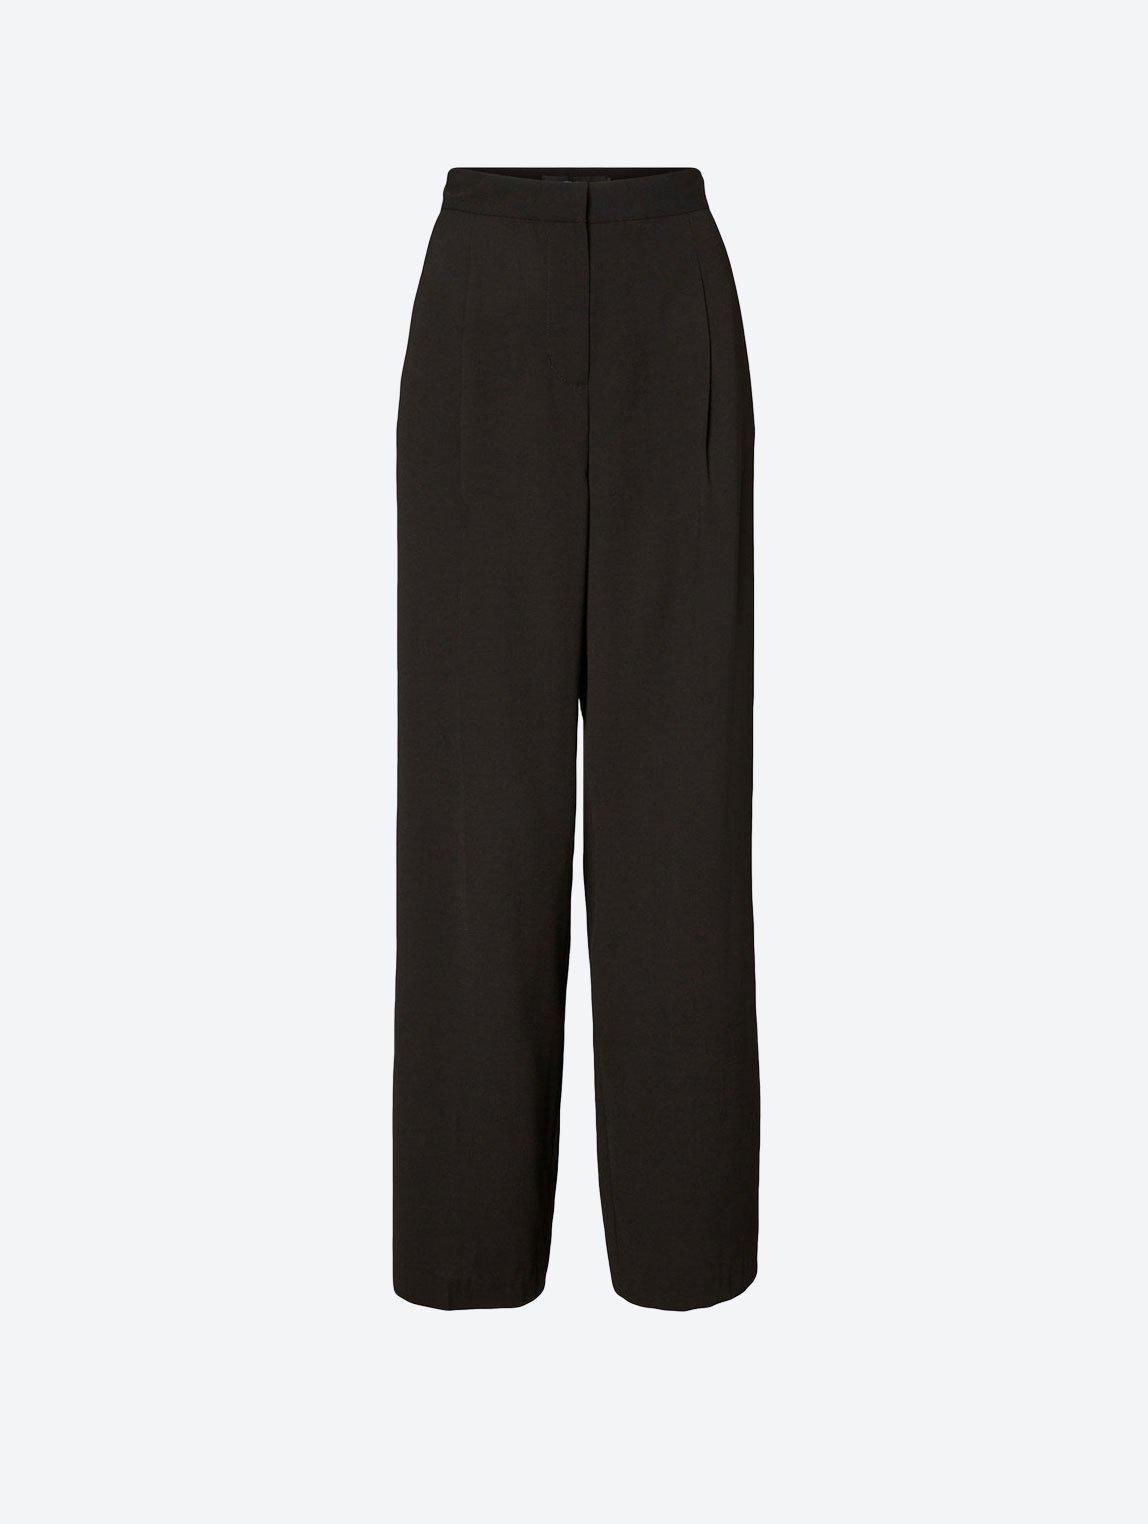 LANJULI LONG WIDE TROUSERS